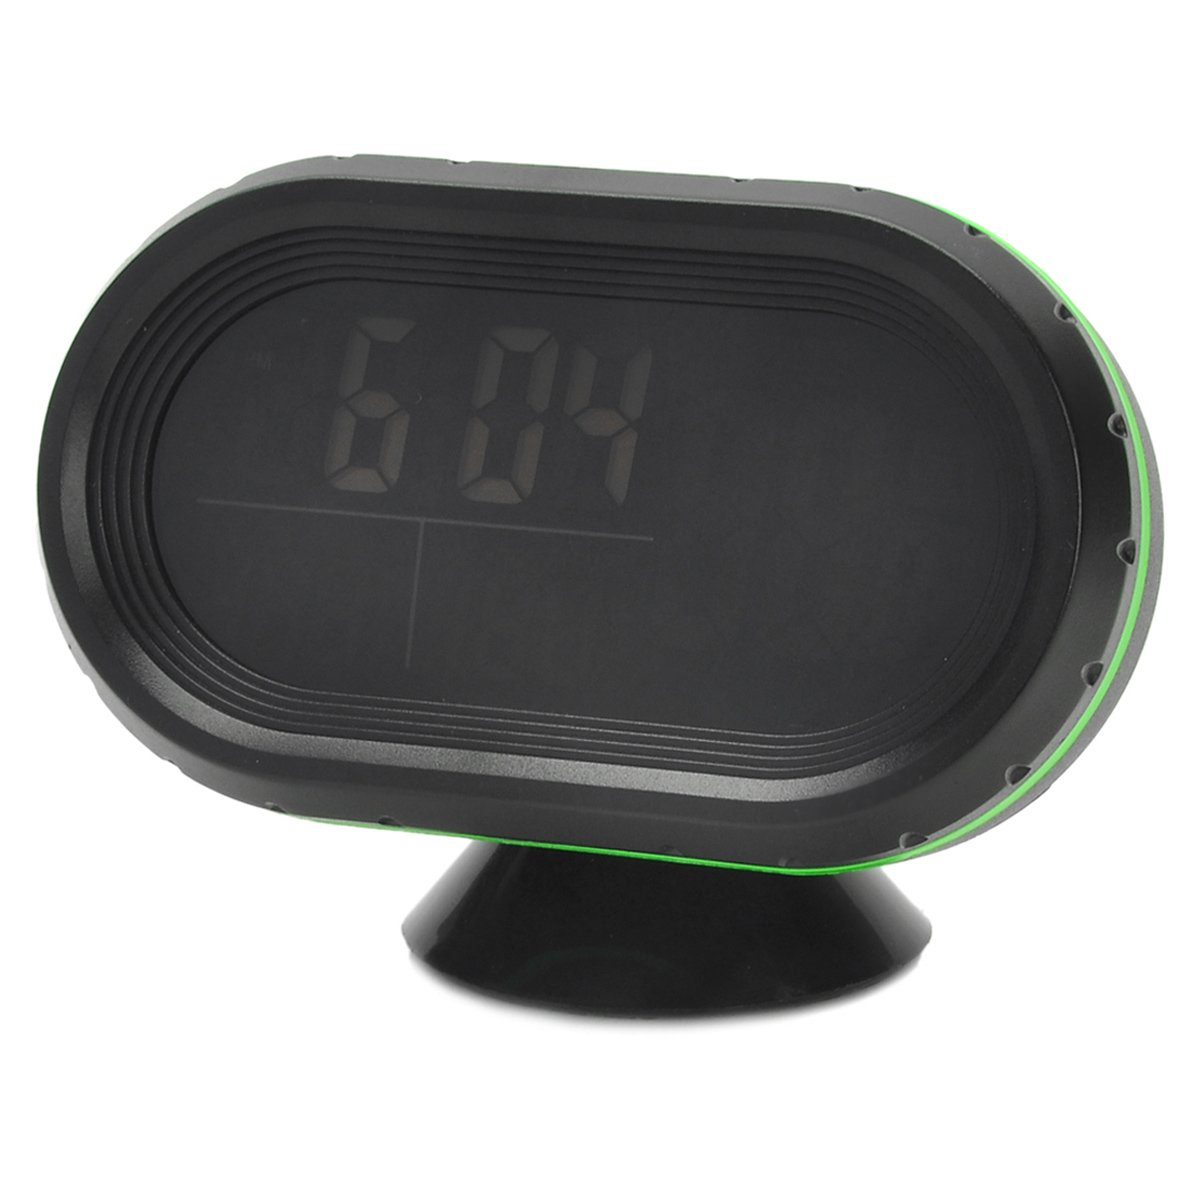 AVOLUTION Black + Green ABS plastic Car 2.5'' LCD Clock/Thermometer/Battery Voltmeter by AVOLUTION (Image #1)